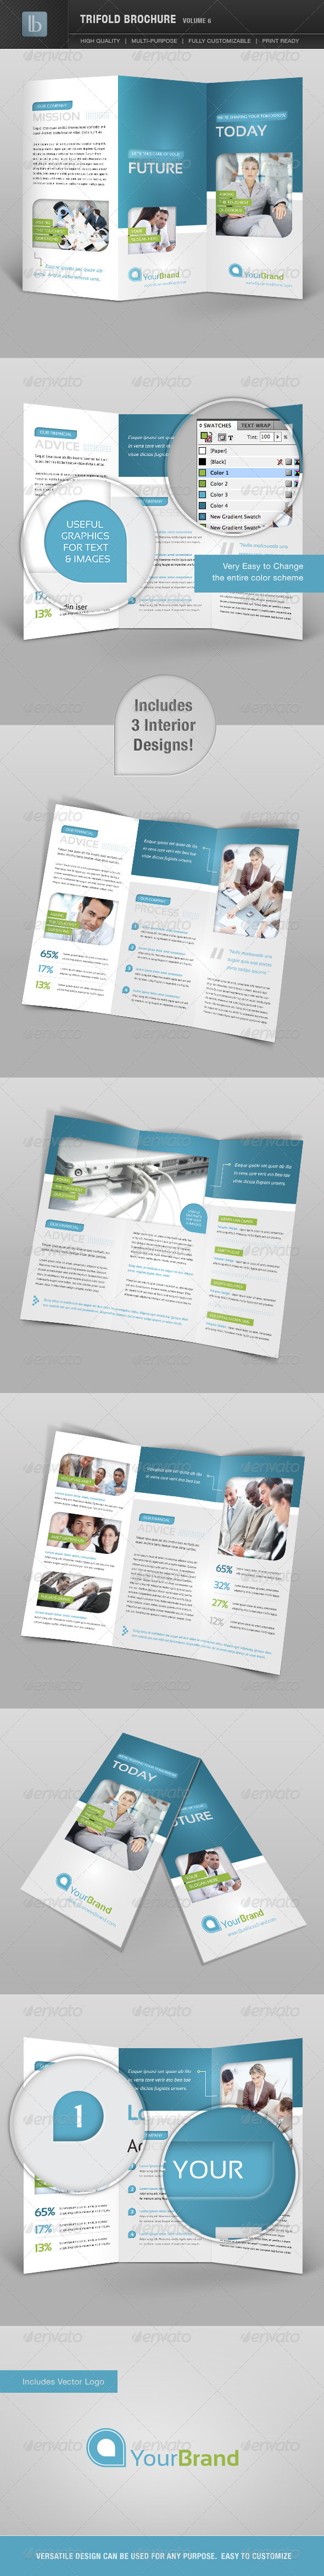 Trifold Brochure | Volume 6 - Brochures Print Templates